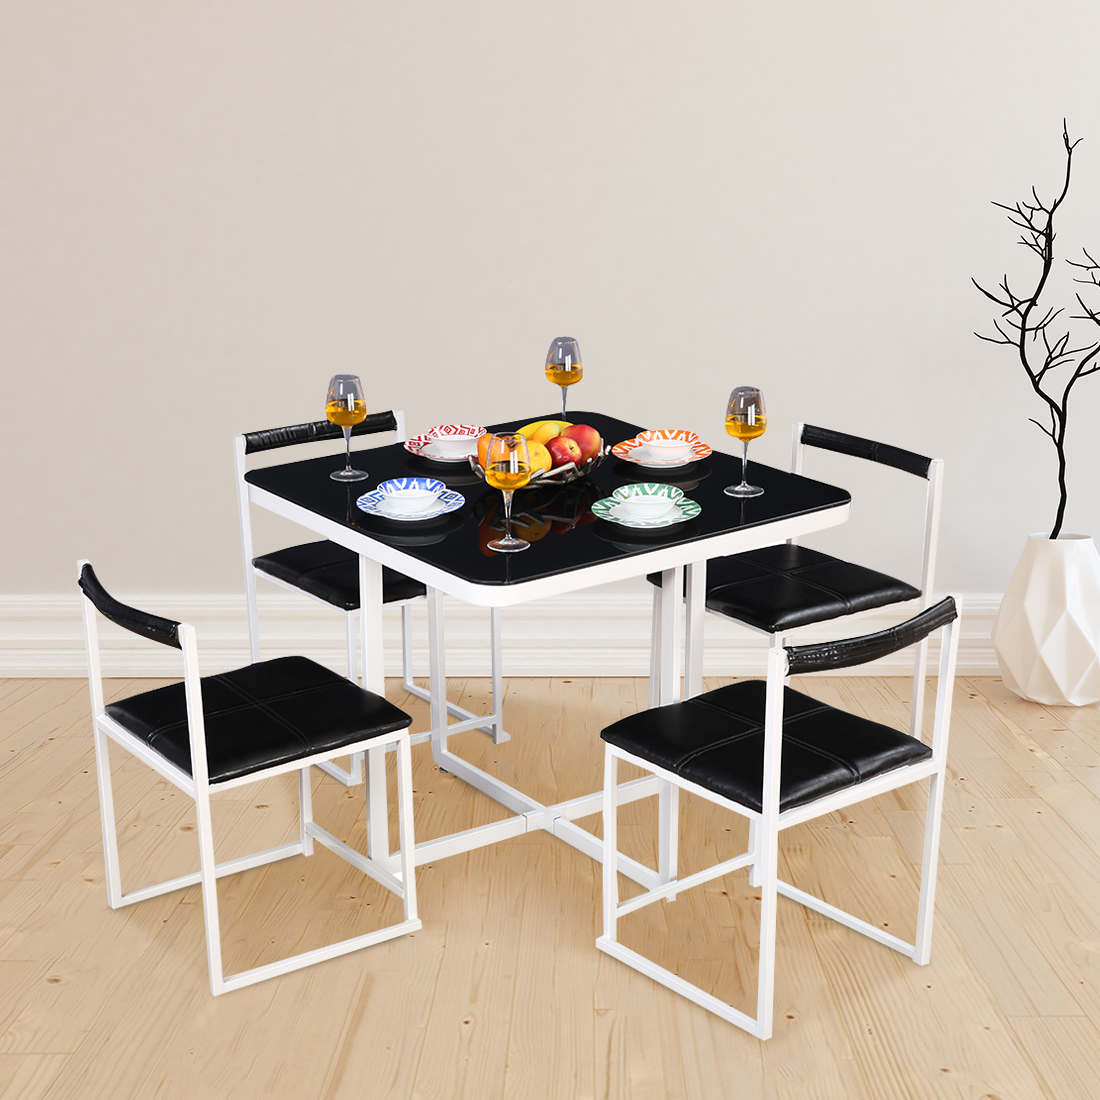 Kube Mild Steel Four Seater Dining Set in Black & White Colour by HomeTown